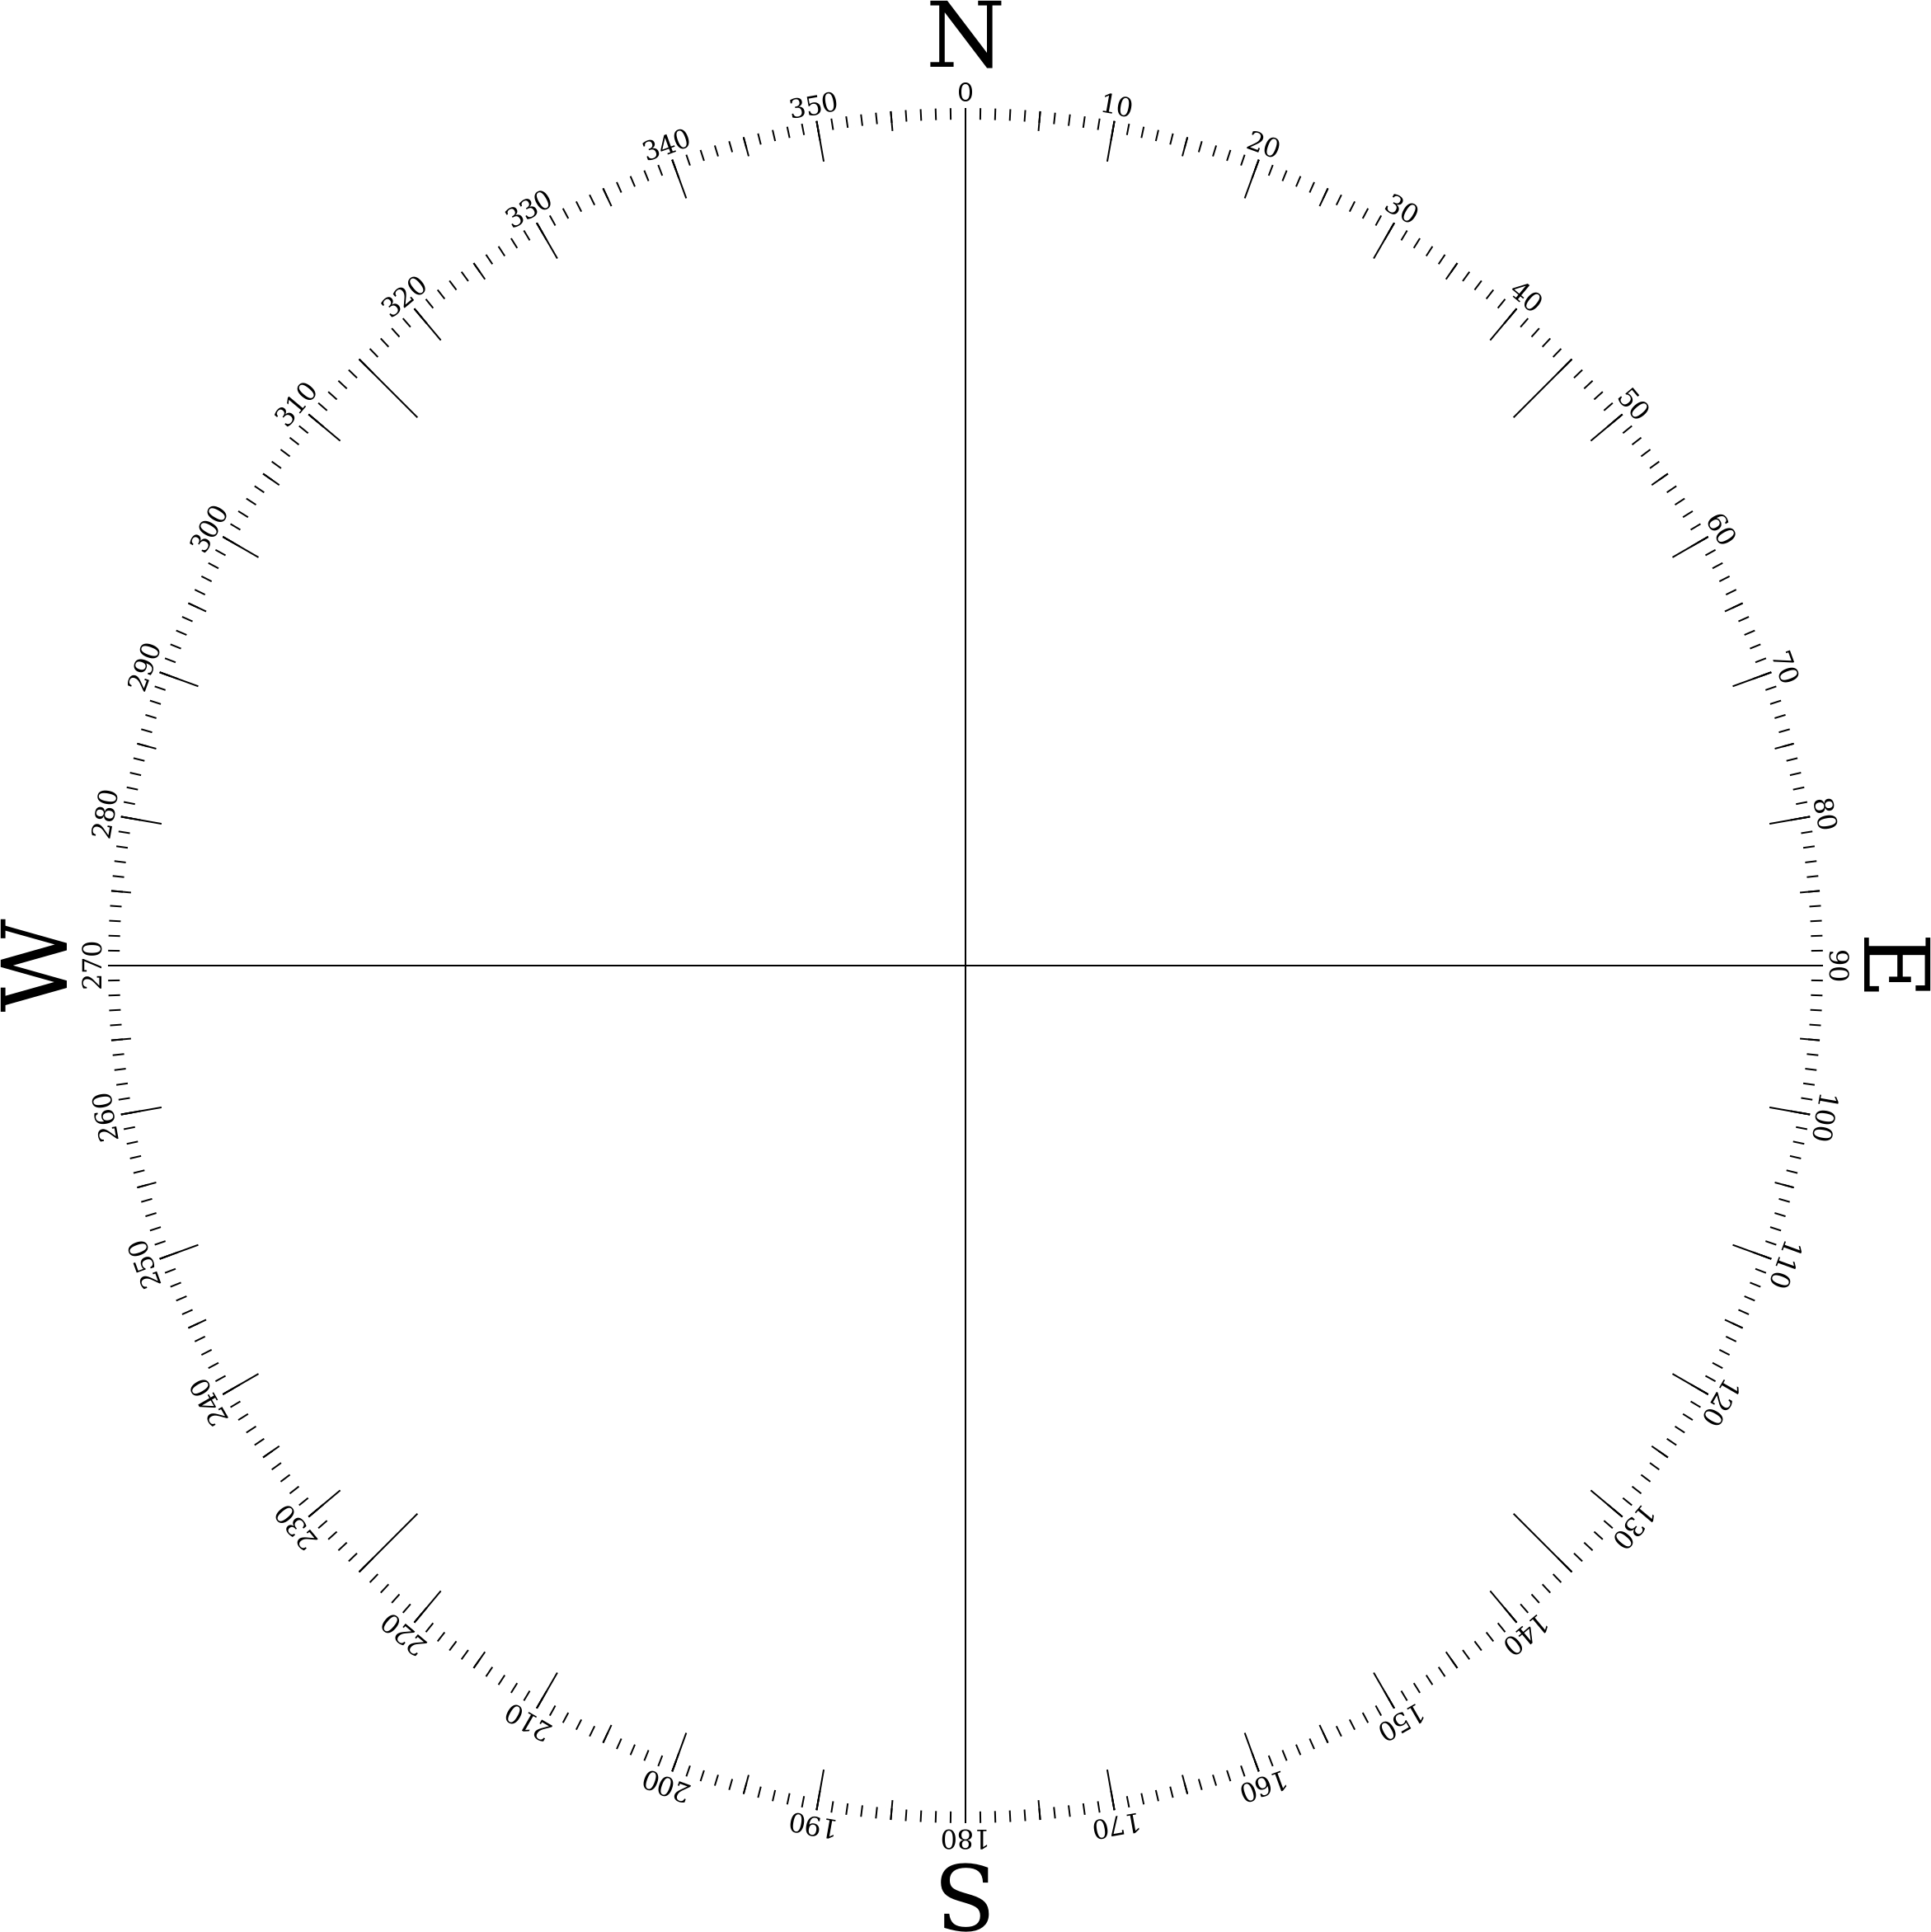 Compass Clipart Map Skill Compass Map Skill Transparent